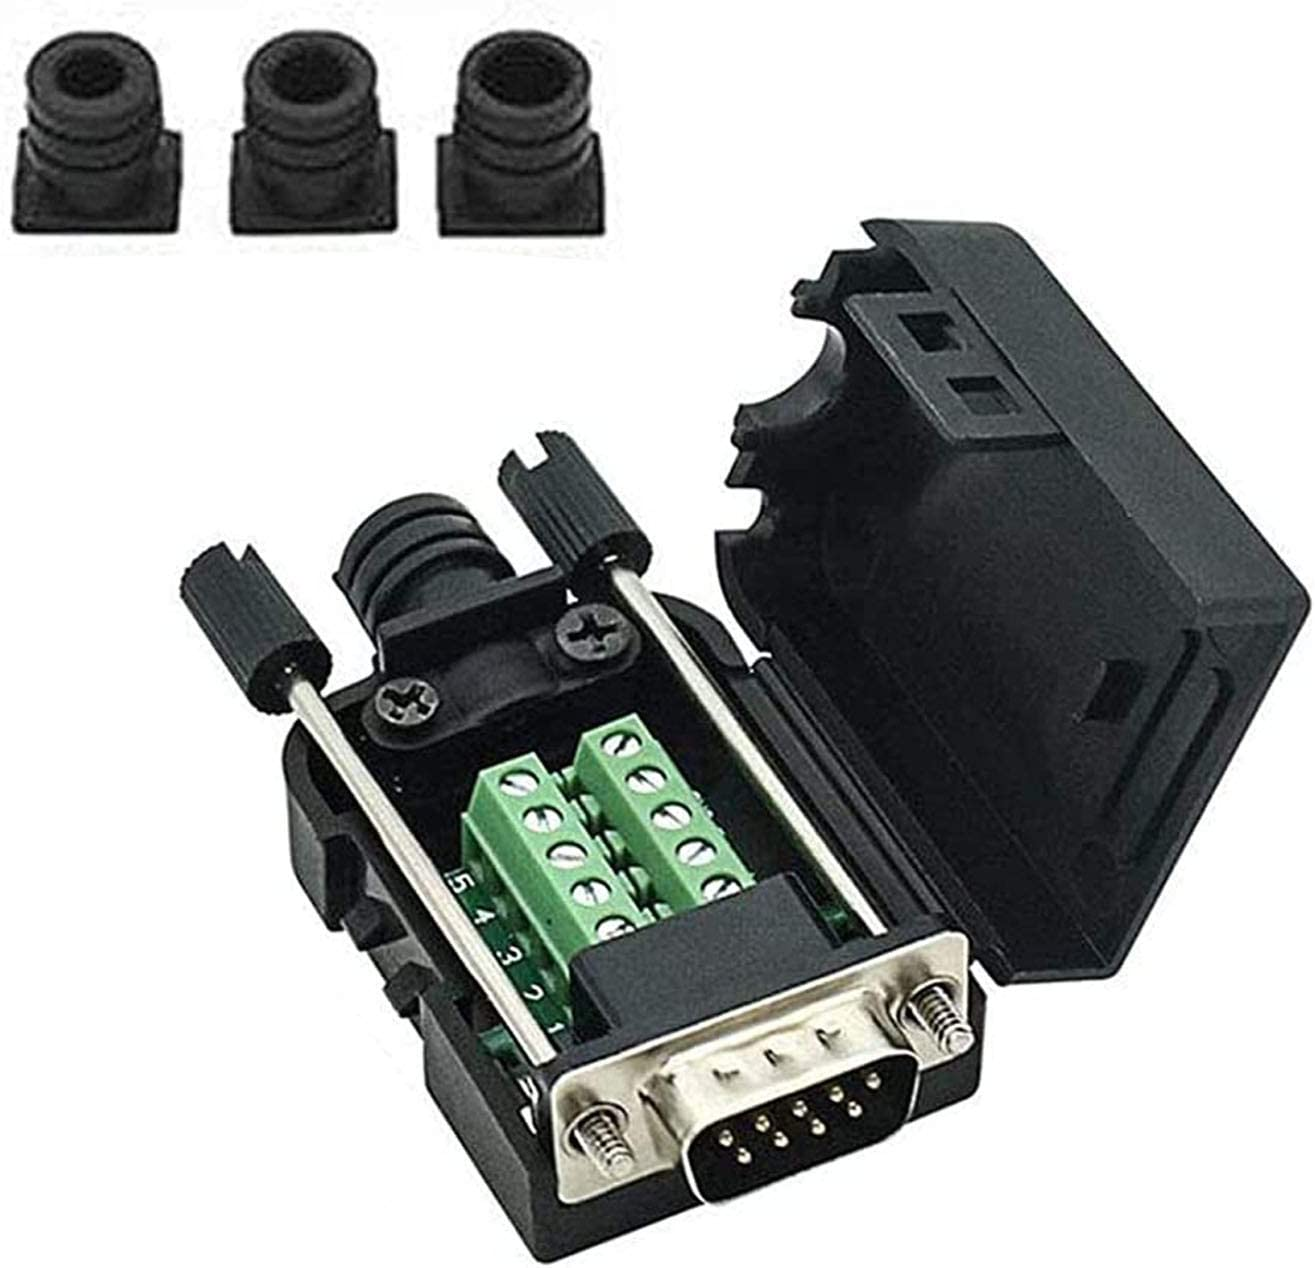 Connector DB9 RS232 D-SUB Male New color Serial 9-pin Adapter Port Free shipping on posting reviews